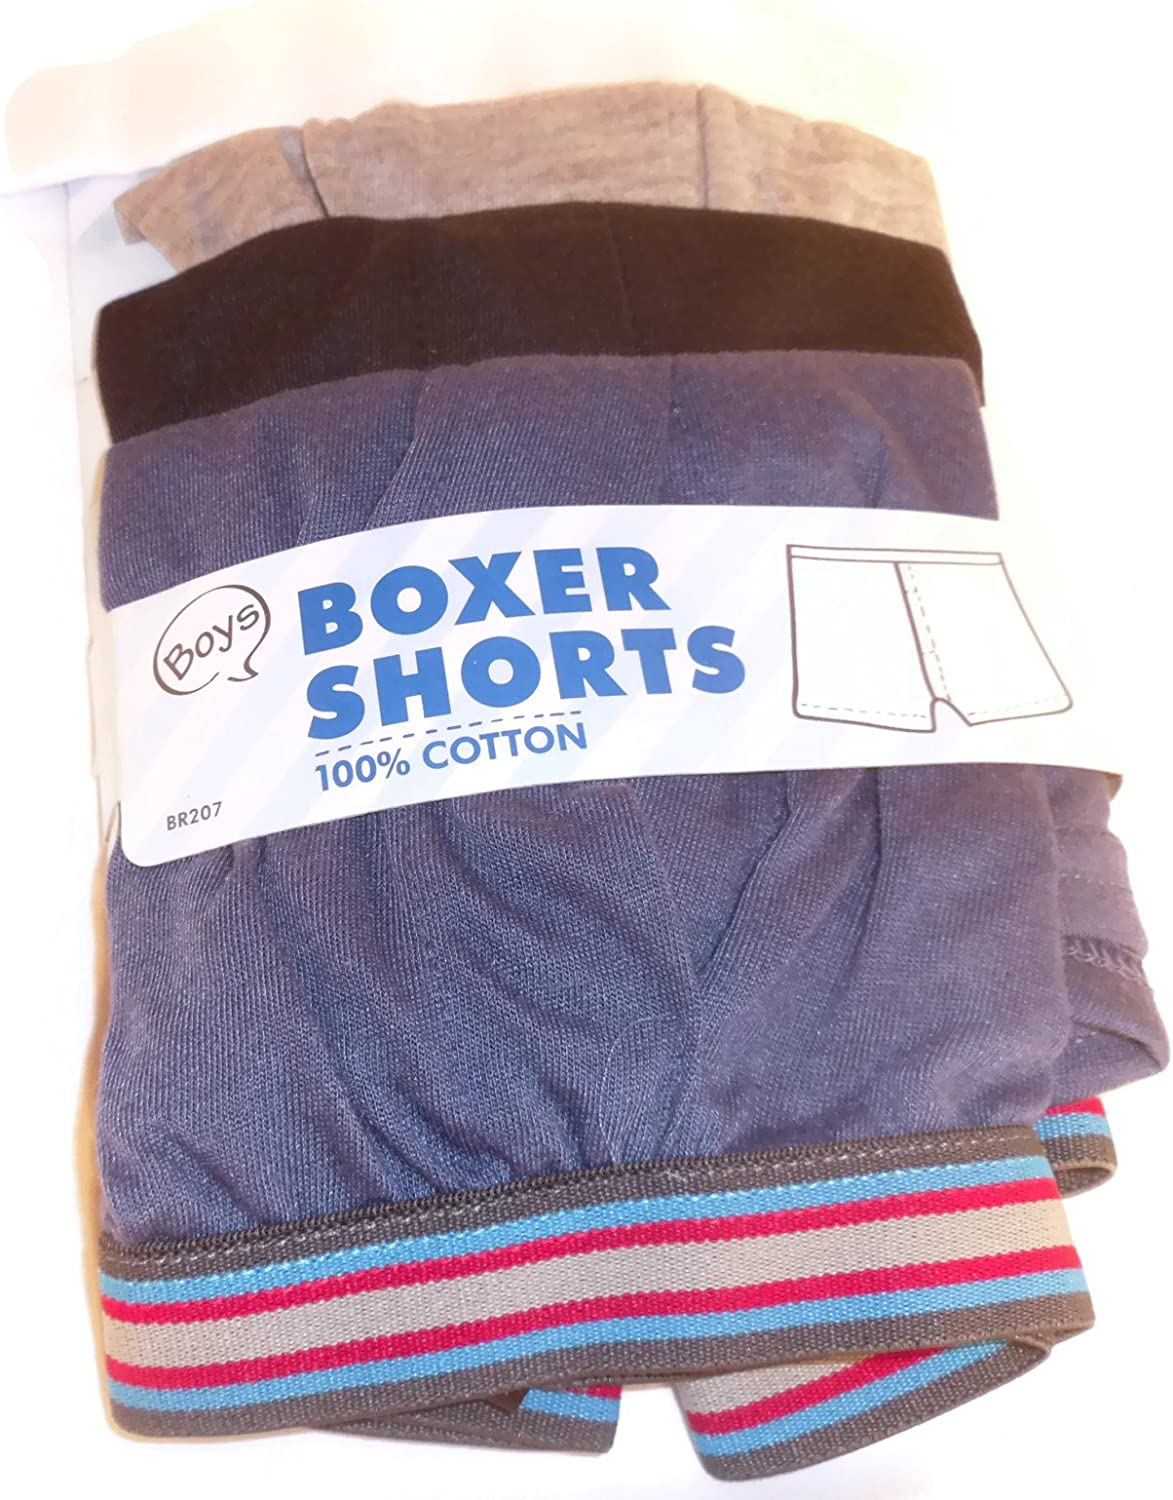 boxer shorts packaging